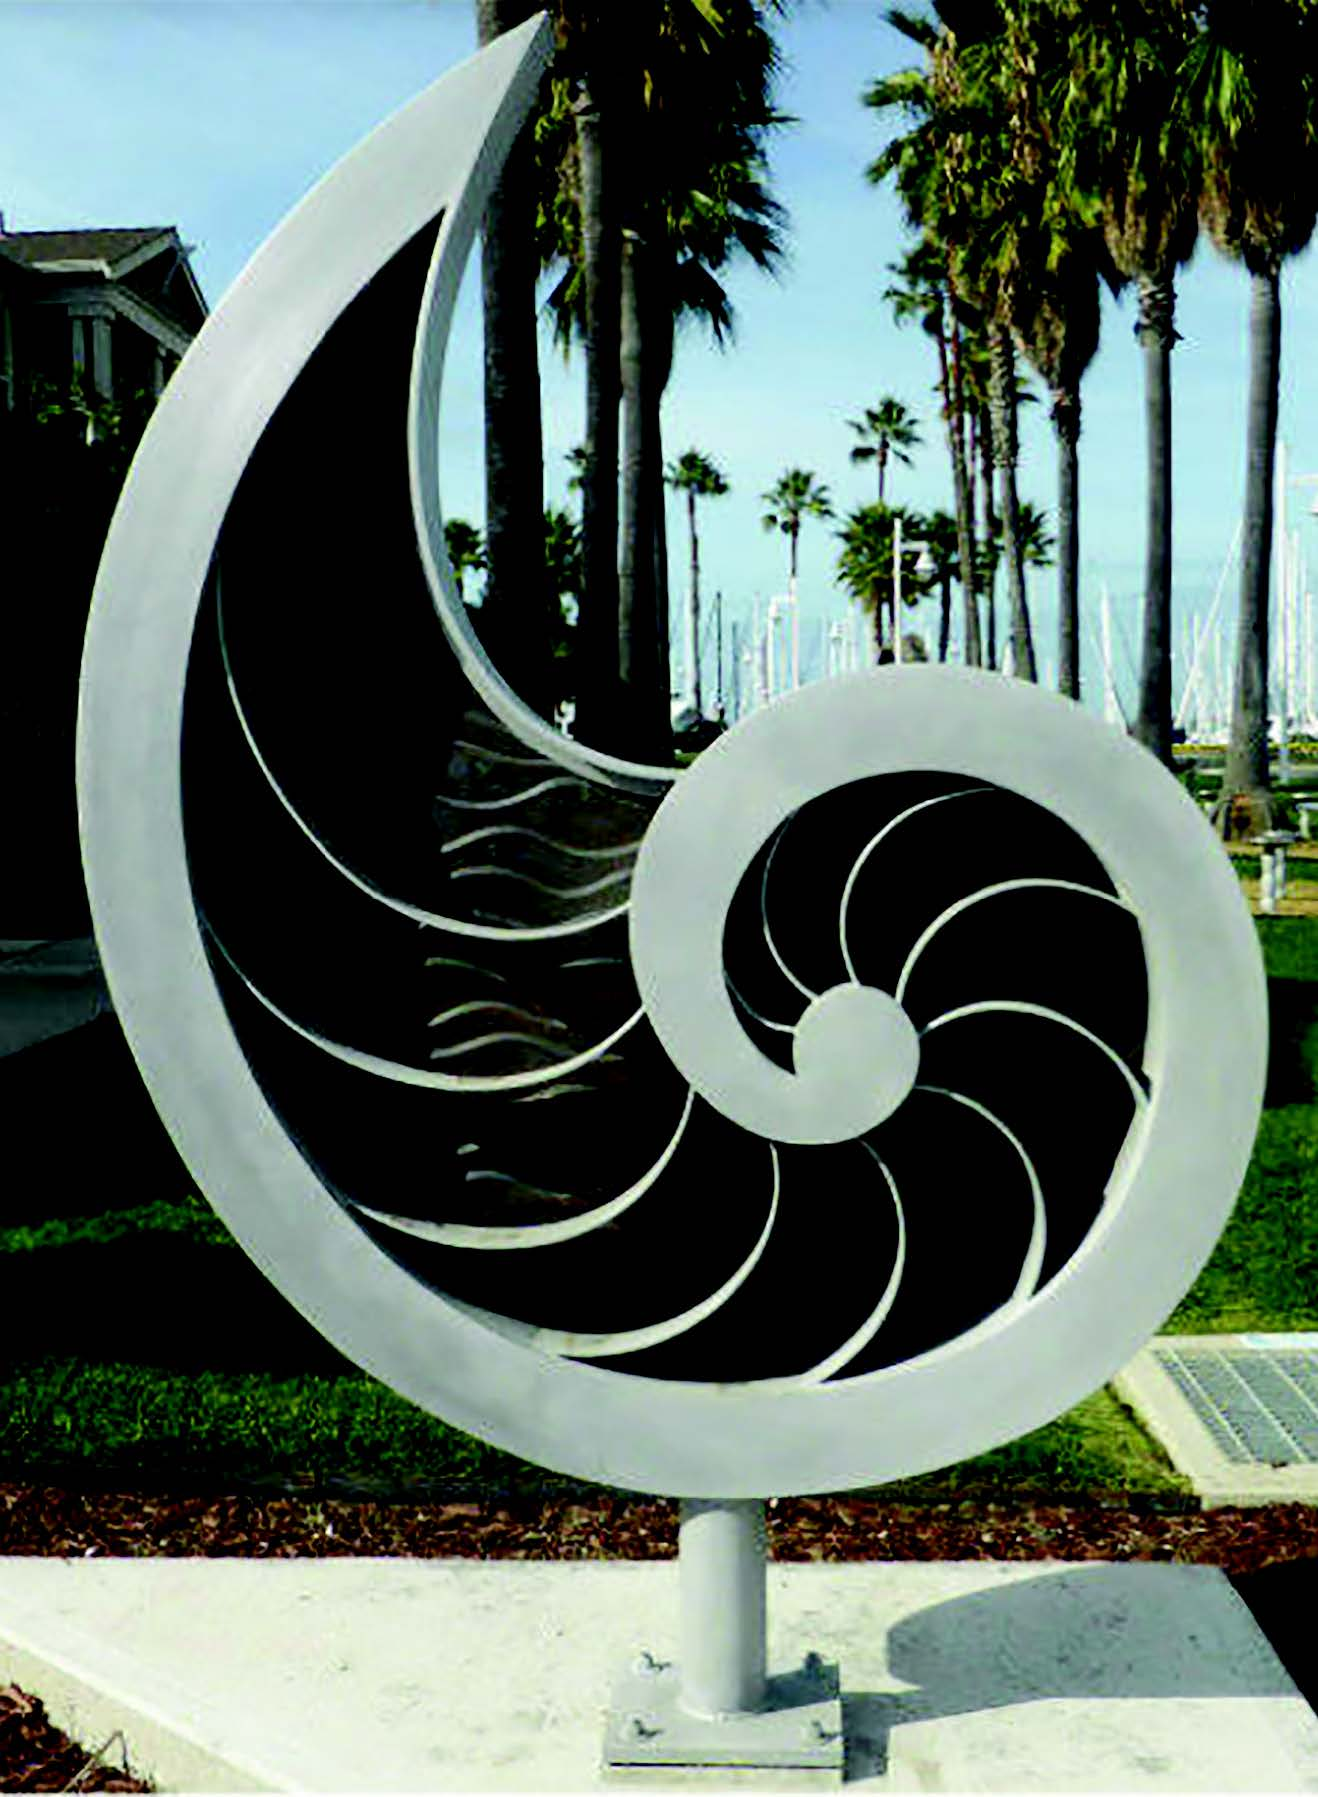 The attitude toward public art — like this sculpture familiar to anyone who strolls the Oakland Estuary near the foot of Grand Street — has changed. The City Council will take these changes into account.